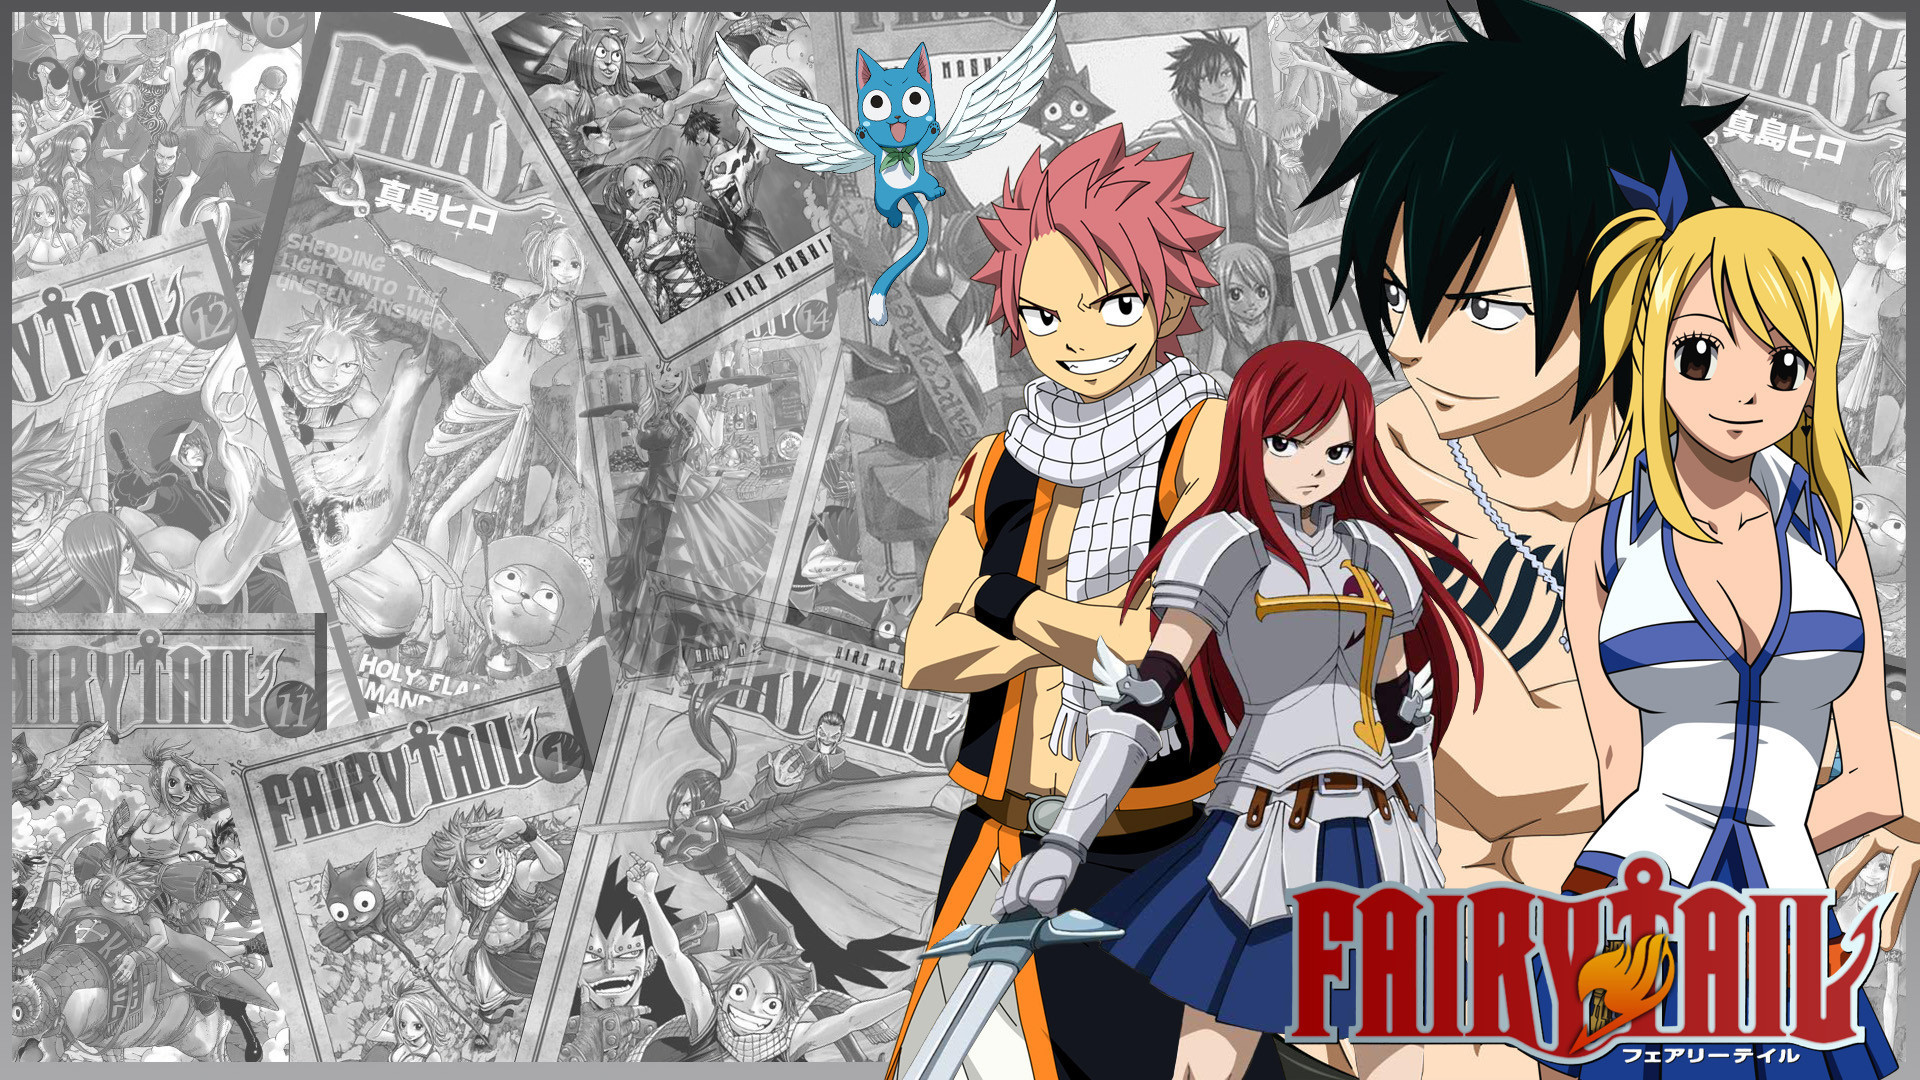 1920x1080  Ewallpaper Hub brings Fairy Tail Wallpaper in high resolution for  you. We collect premium